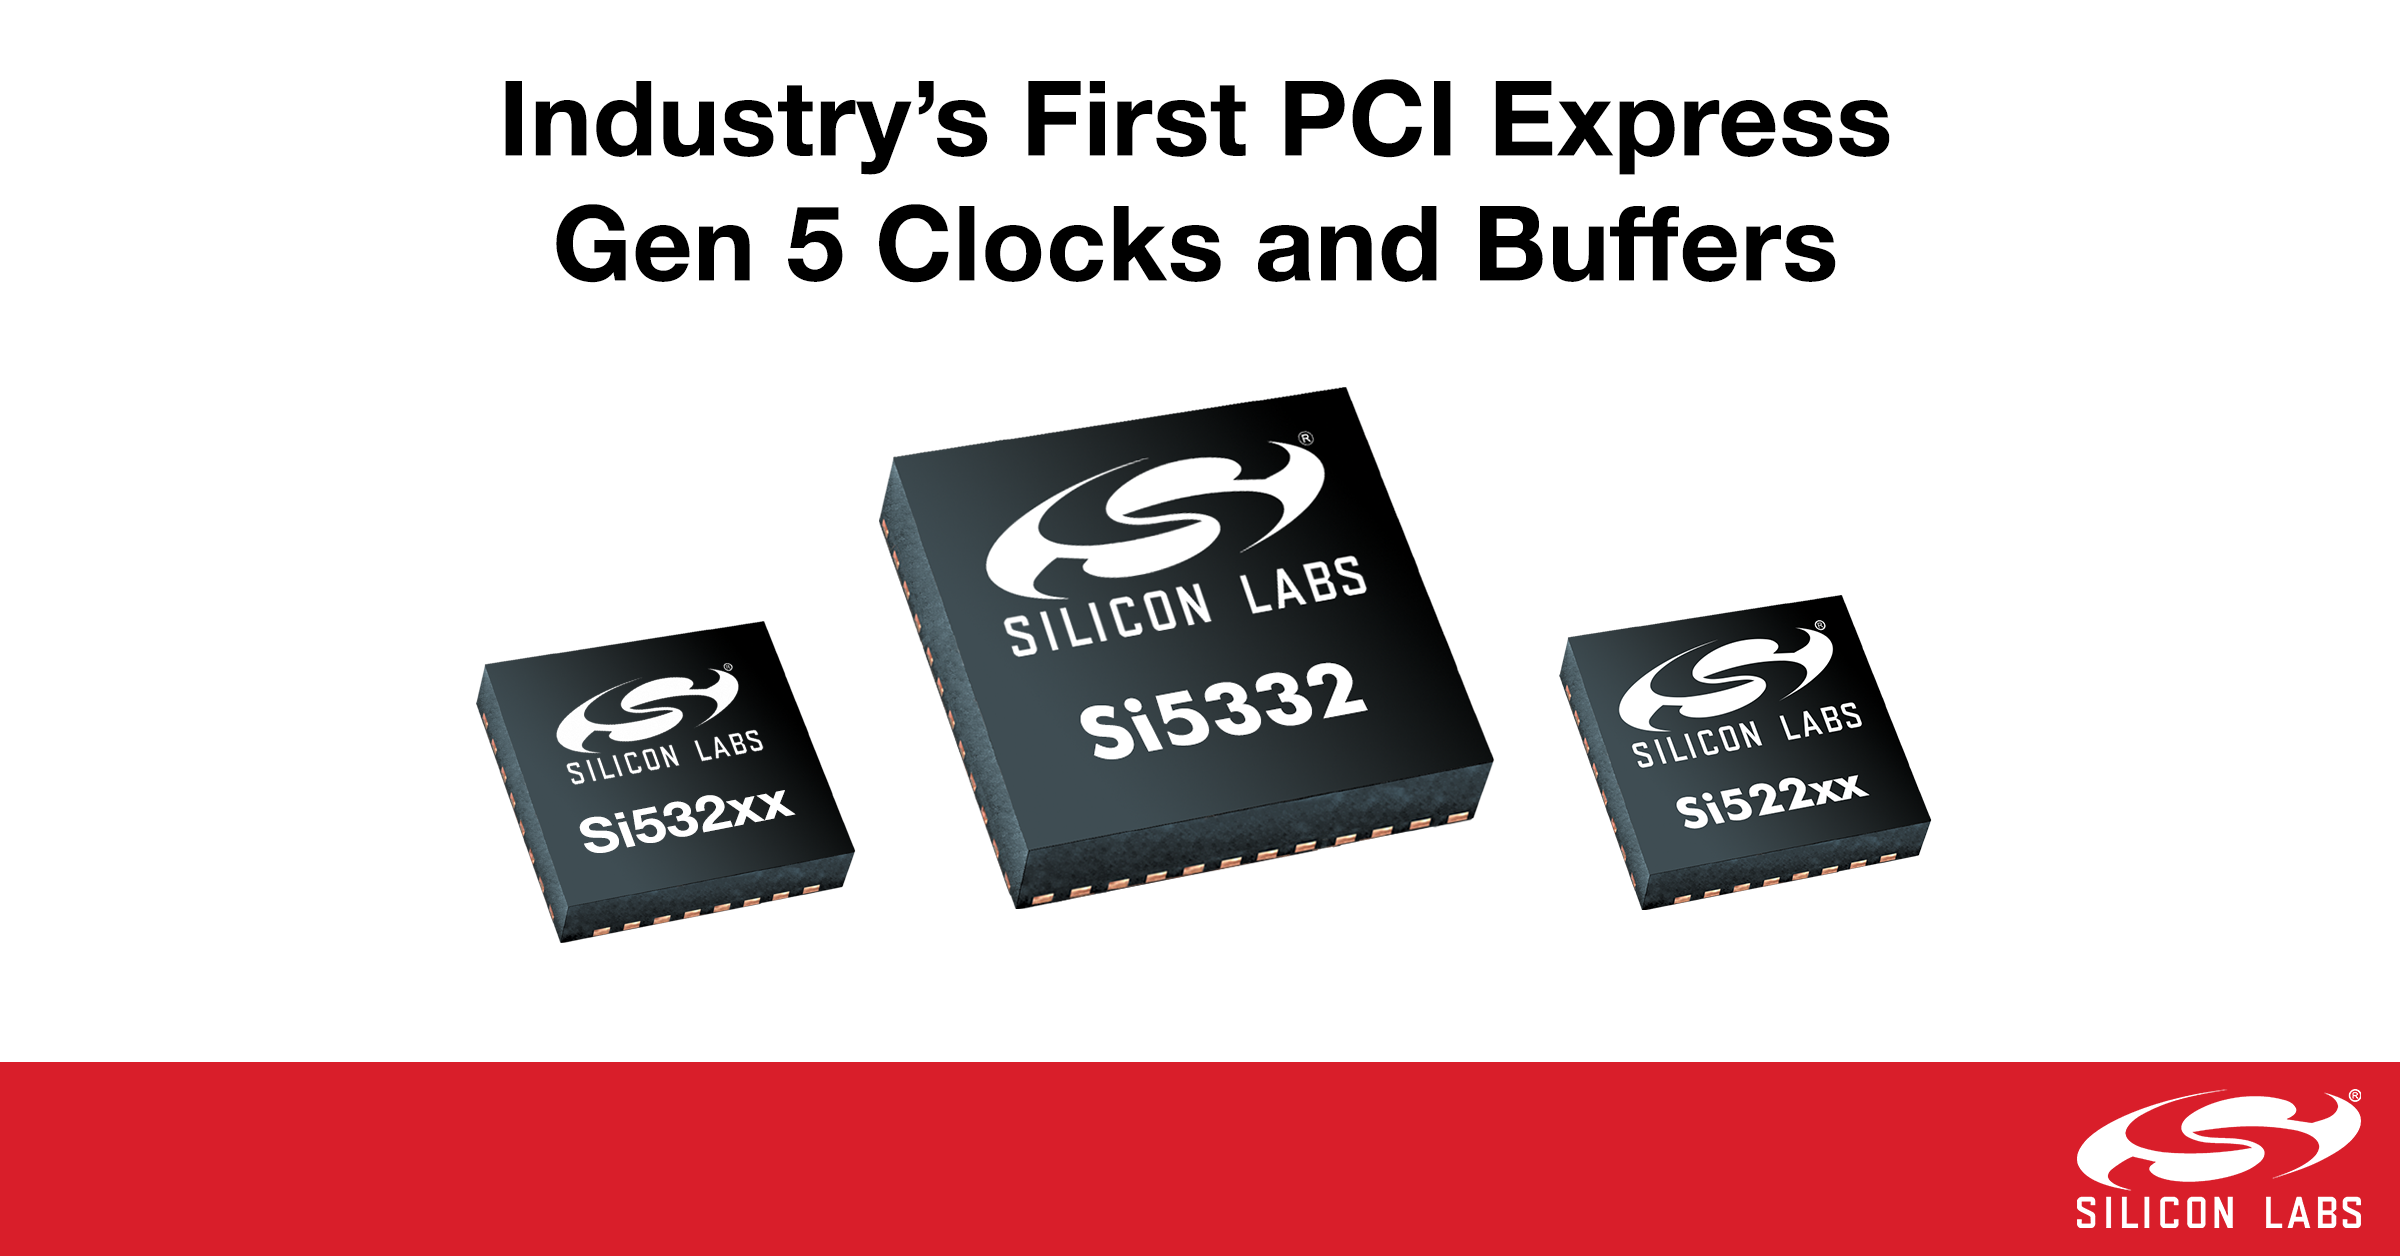 業界首家性能和功耗領先的PCI Express Gen 5時鐘和緩沖器